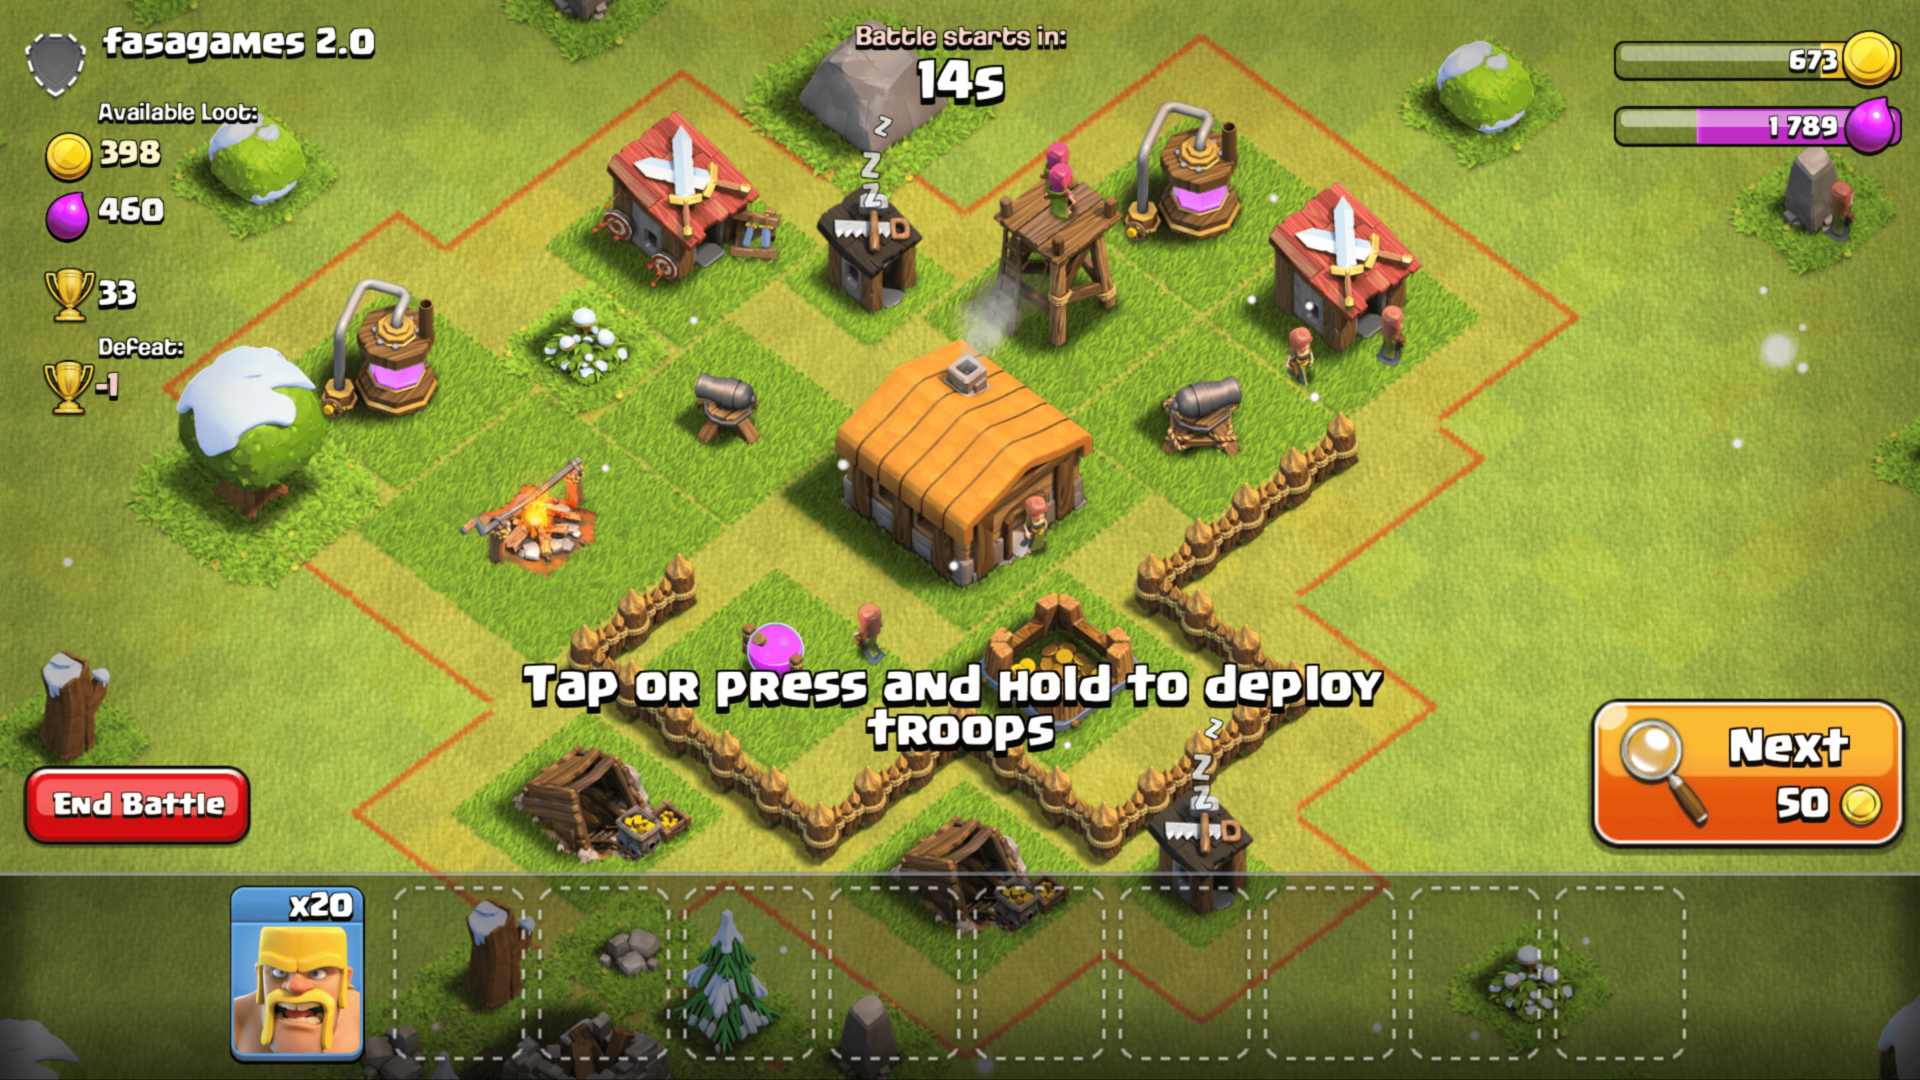 Deploy troops screenshot of Clash of Clans video game interface.